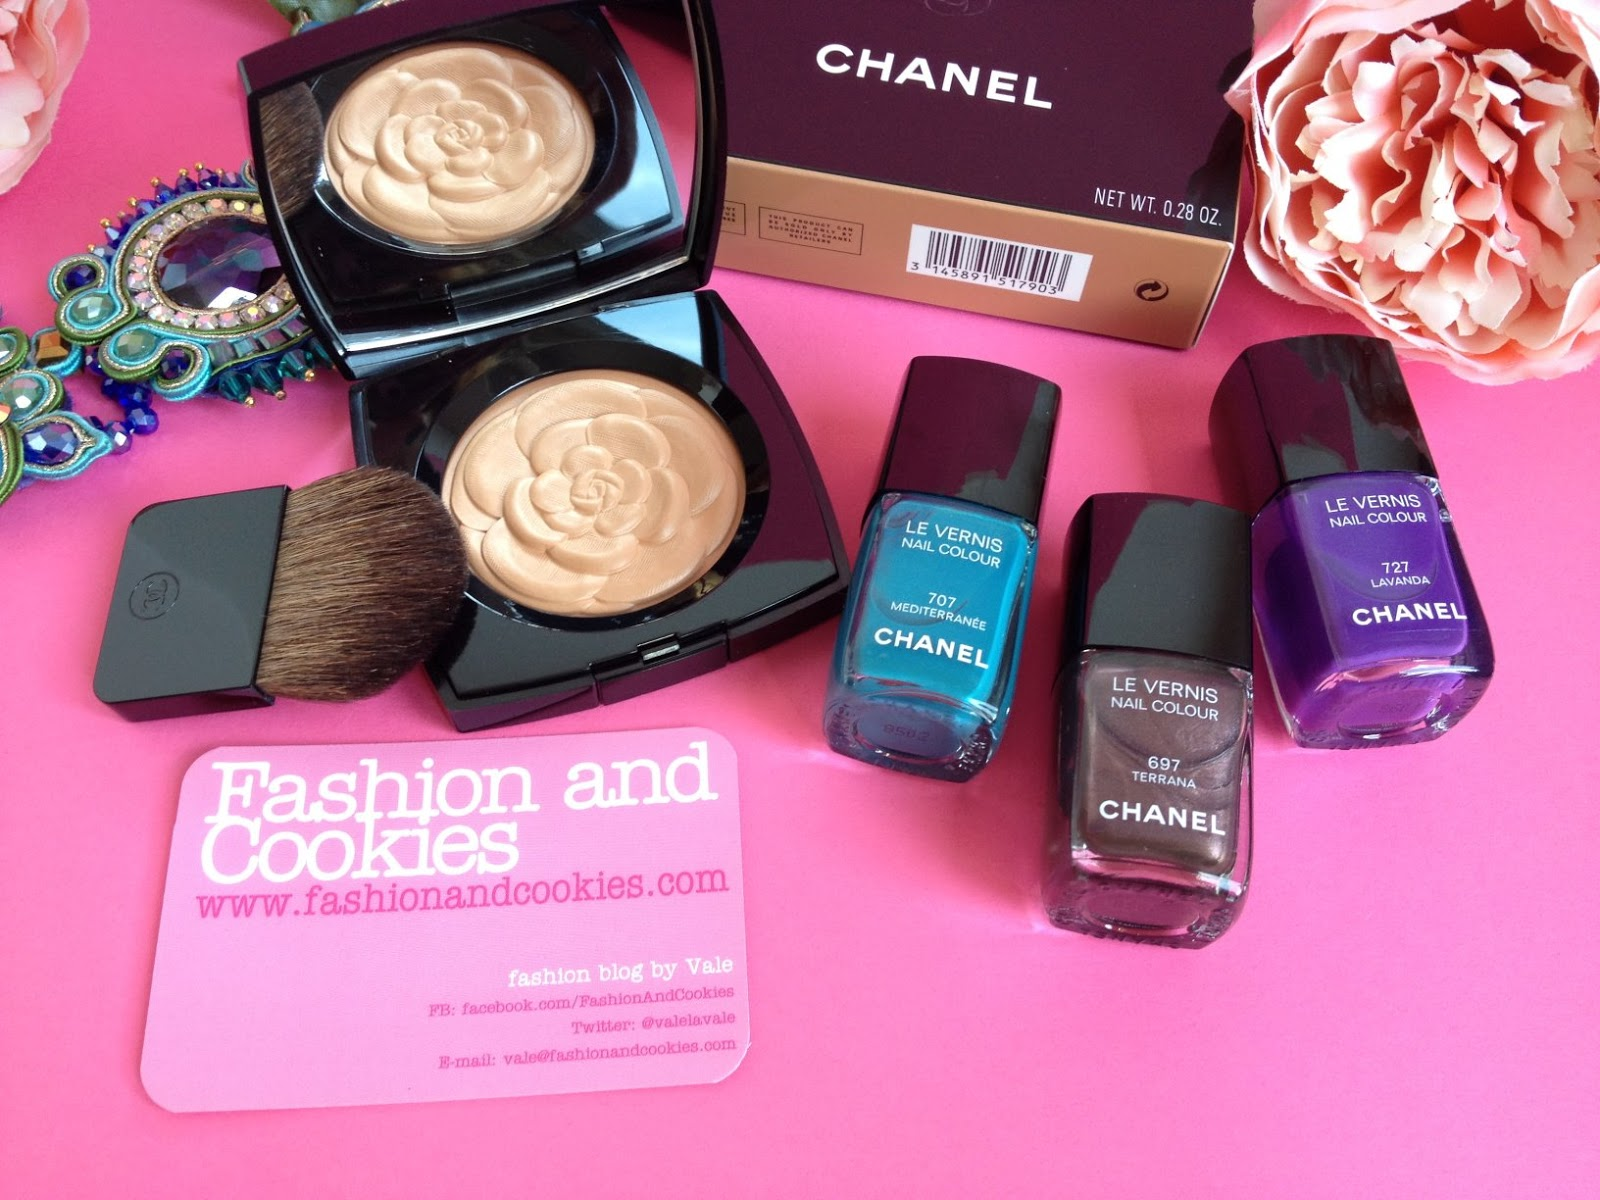 Chanel summer 2015 collection Mediterranee, Chanel summer makeup collection on Fashion and Cookies fashion blog